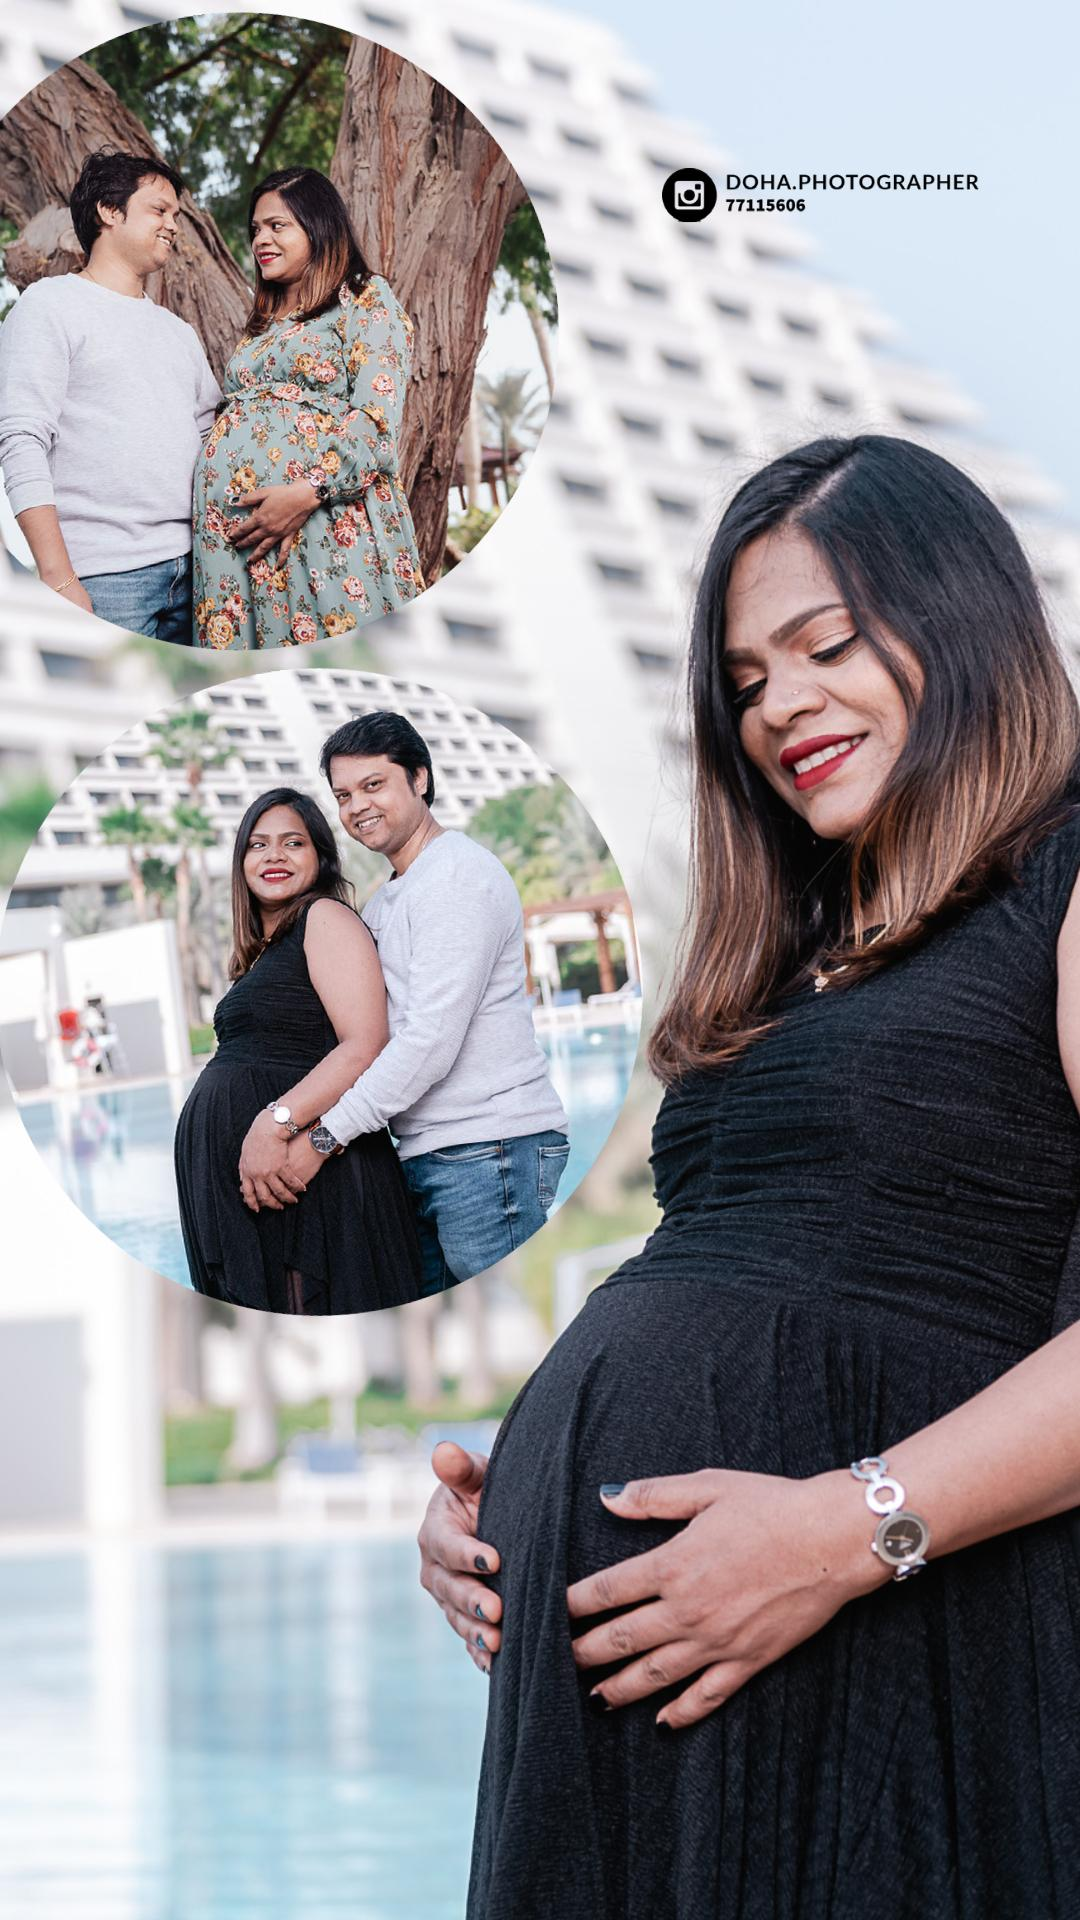 Maternity Photo Session in Doha